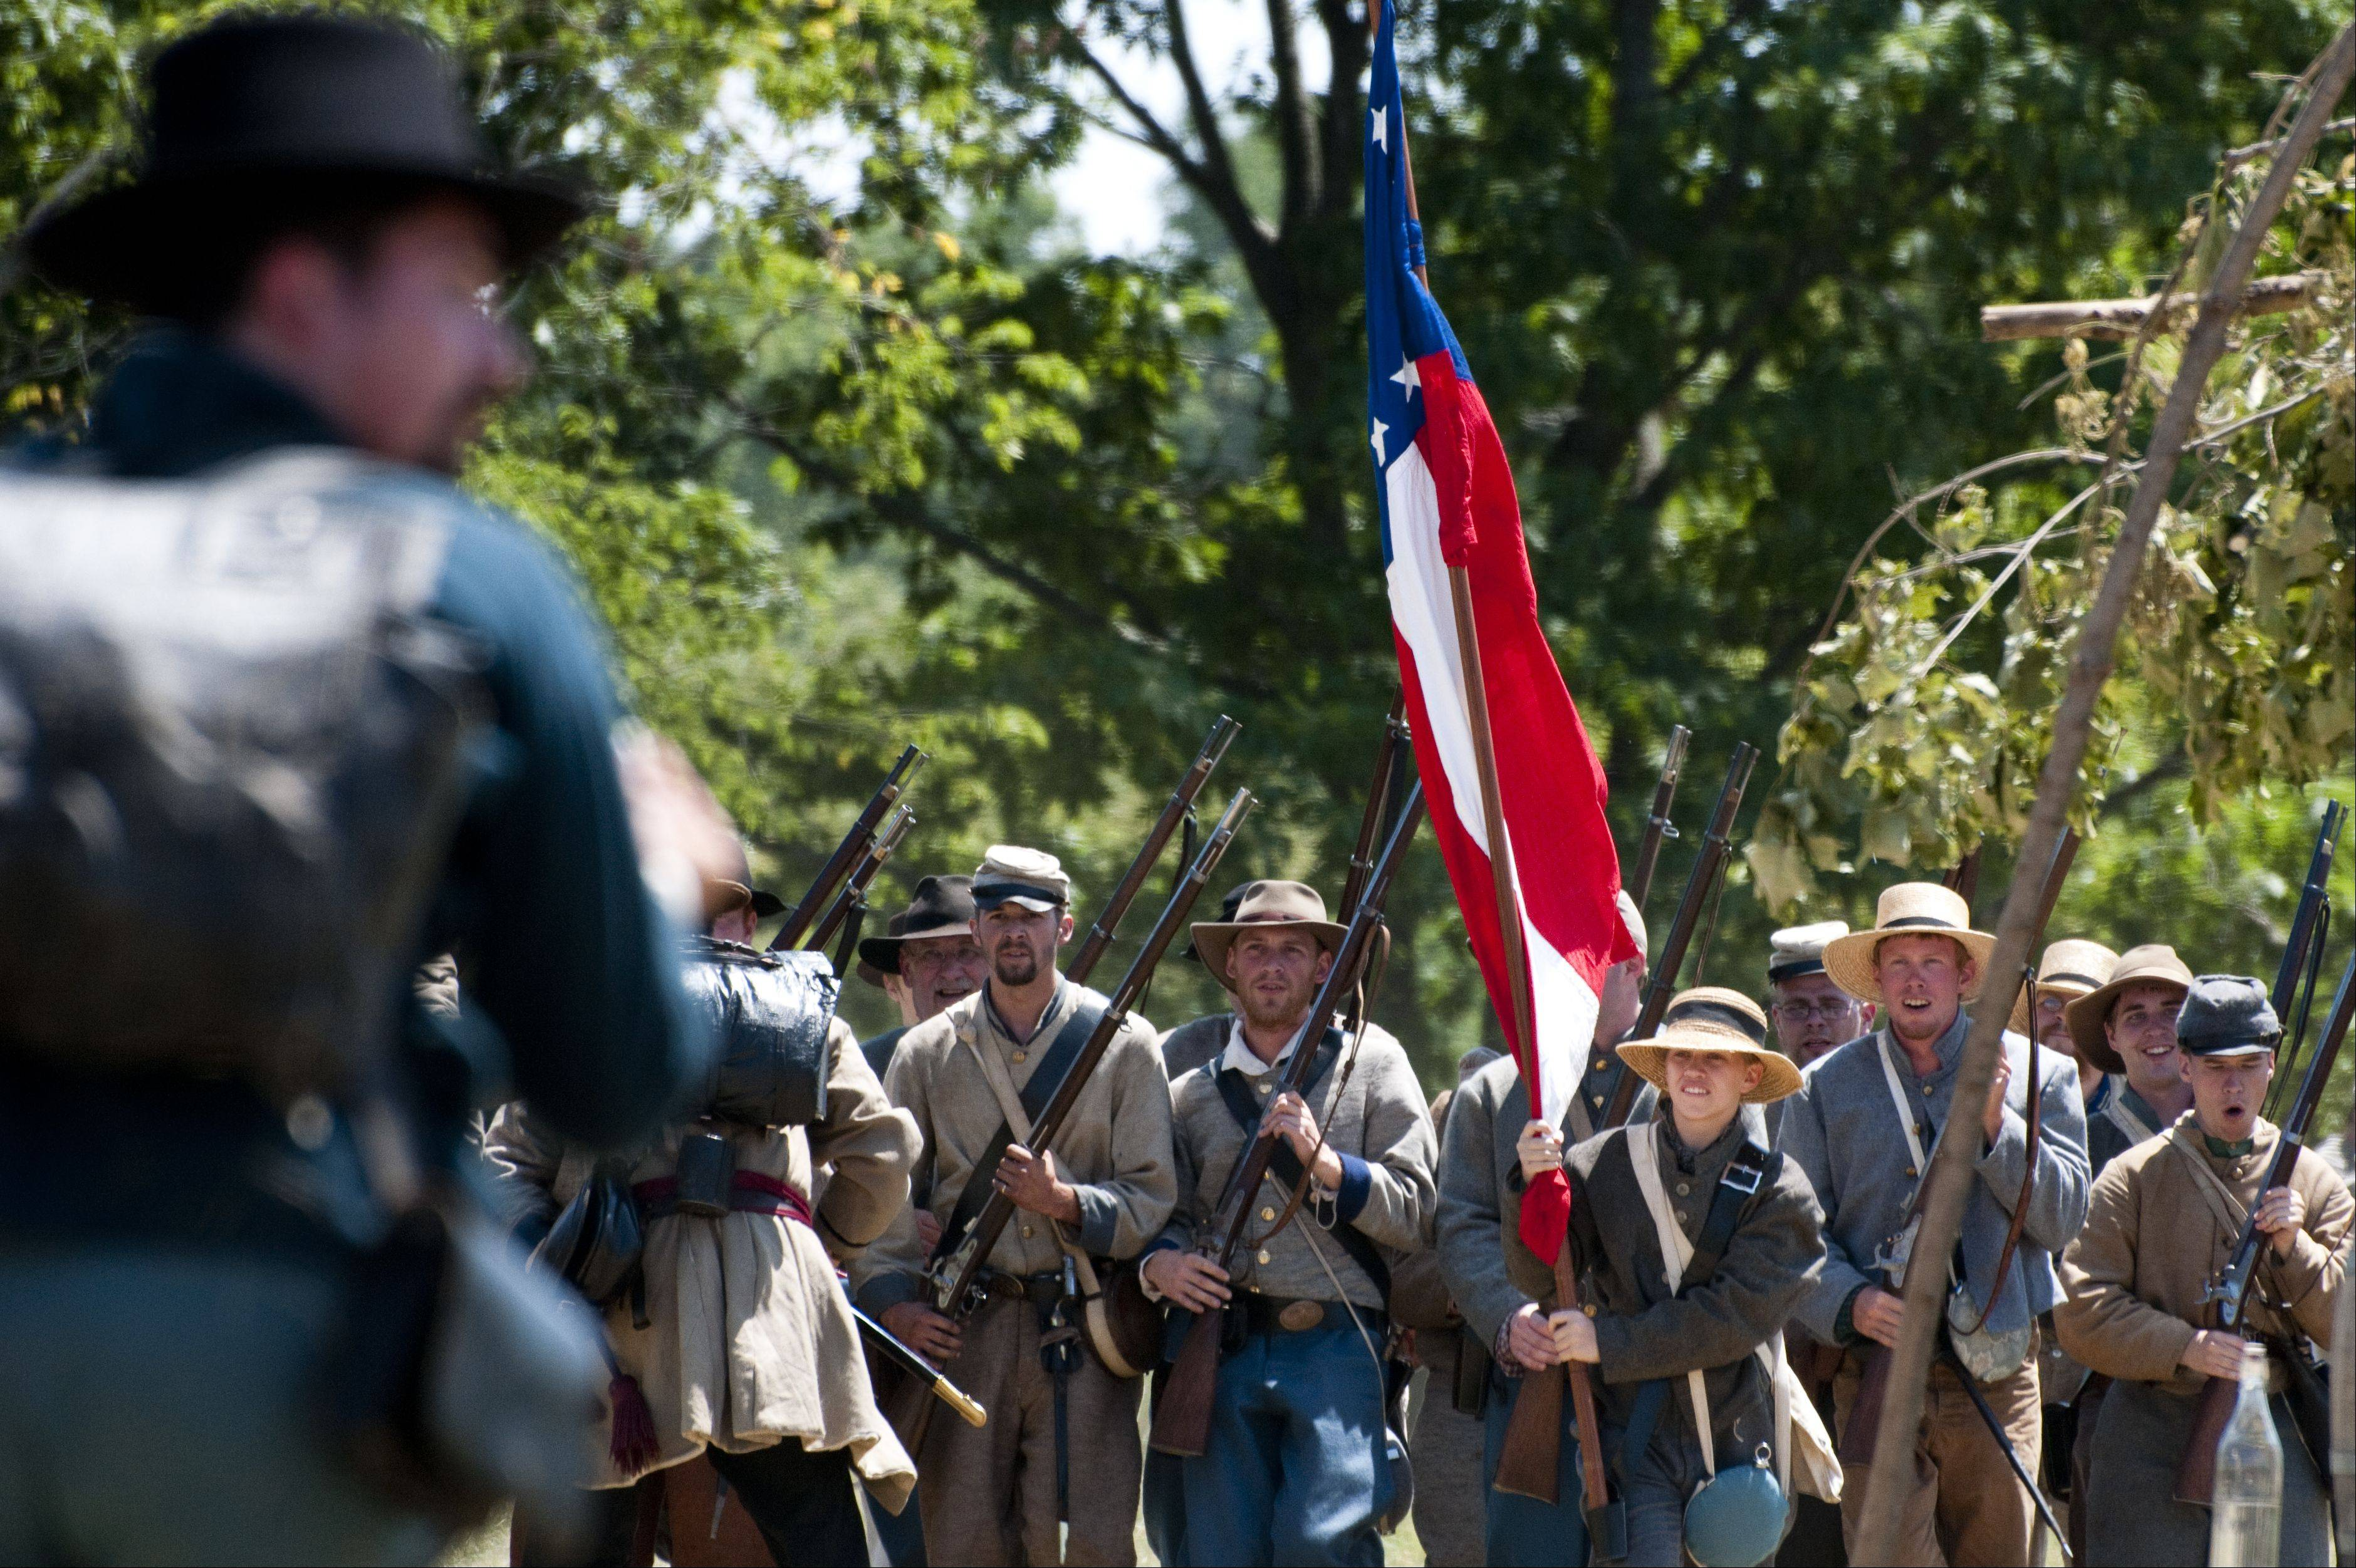 Disbanded Confederate soldiers stage a final rally against a Union flanking maneuver during Civil War Days Sunday in the Lakewood Forest Preserve near Wauconda.